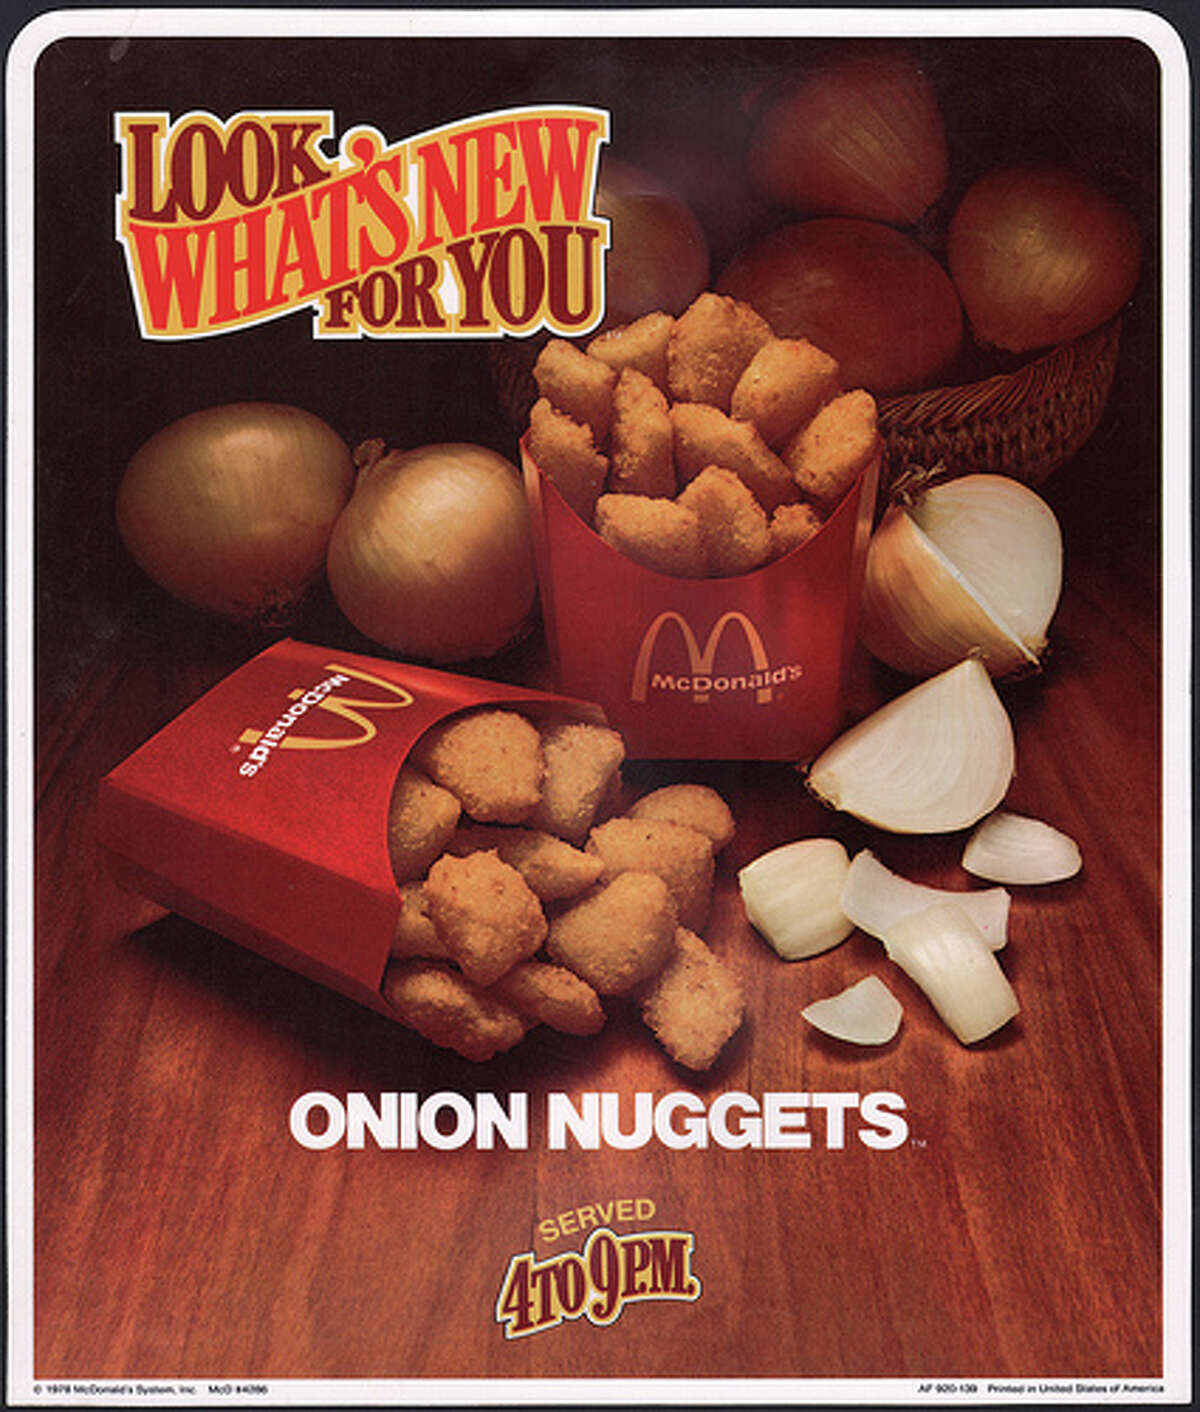 McDonald's Onion Nuggets These Onion Nuggets were introduced in the 1970's. They were clumps of diced onions that were breaded and fried, like their chicken nuggets.